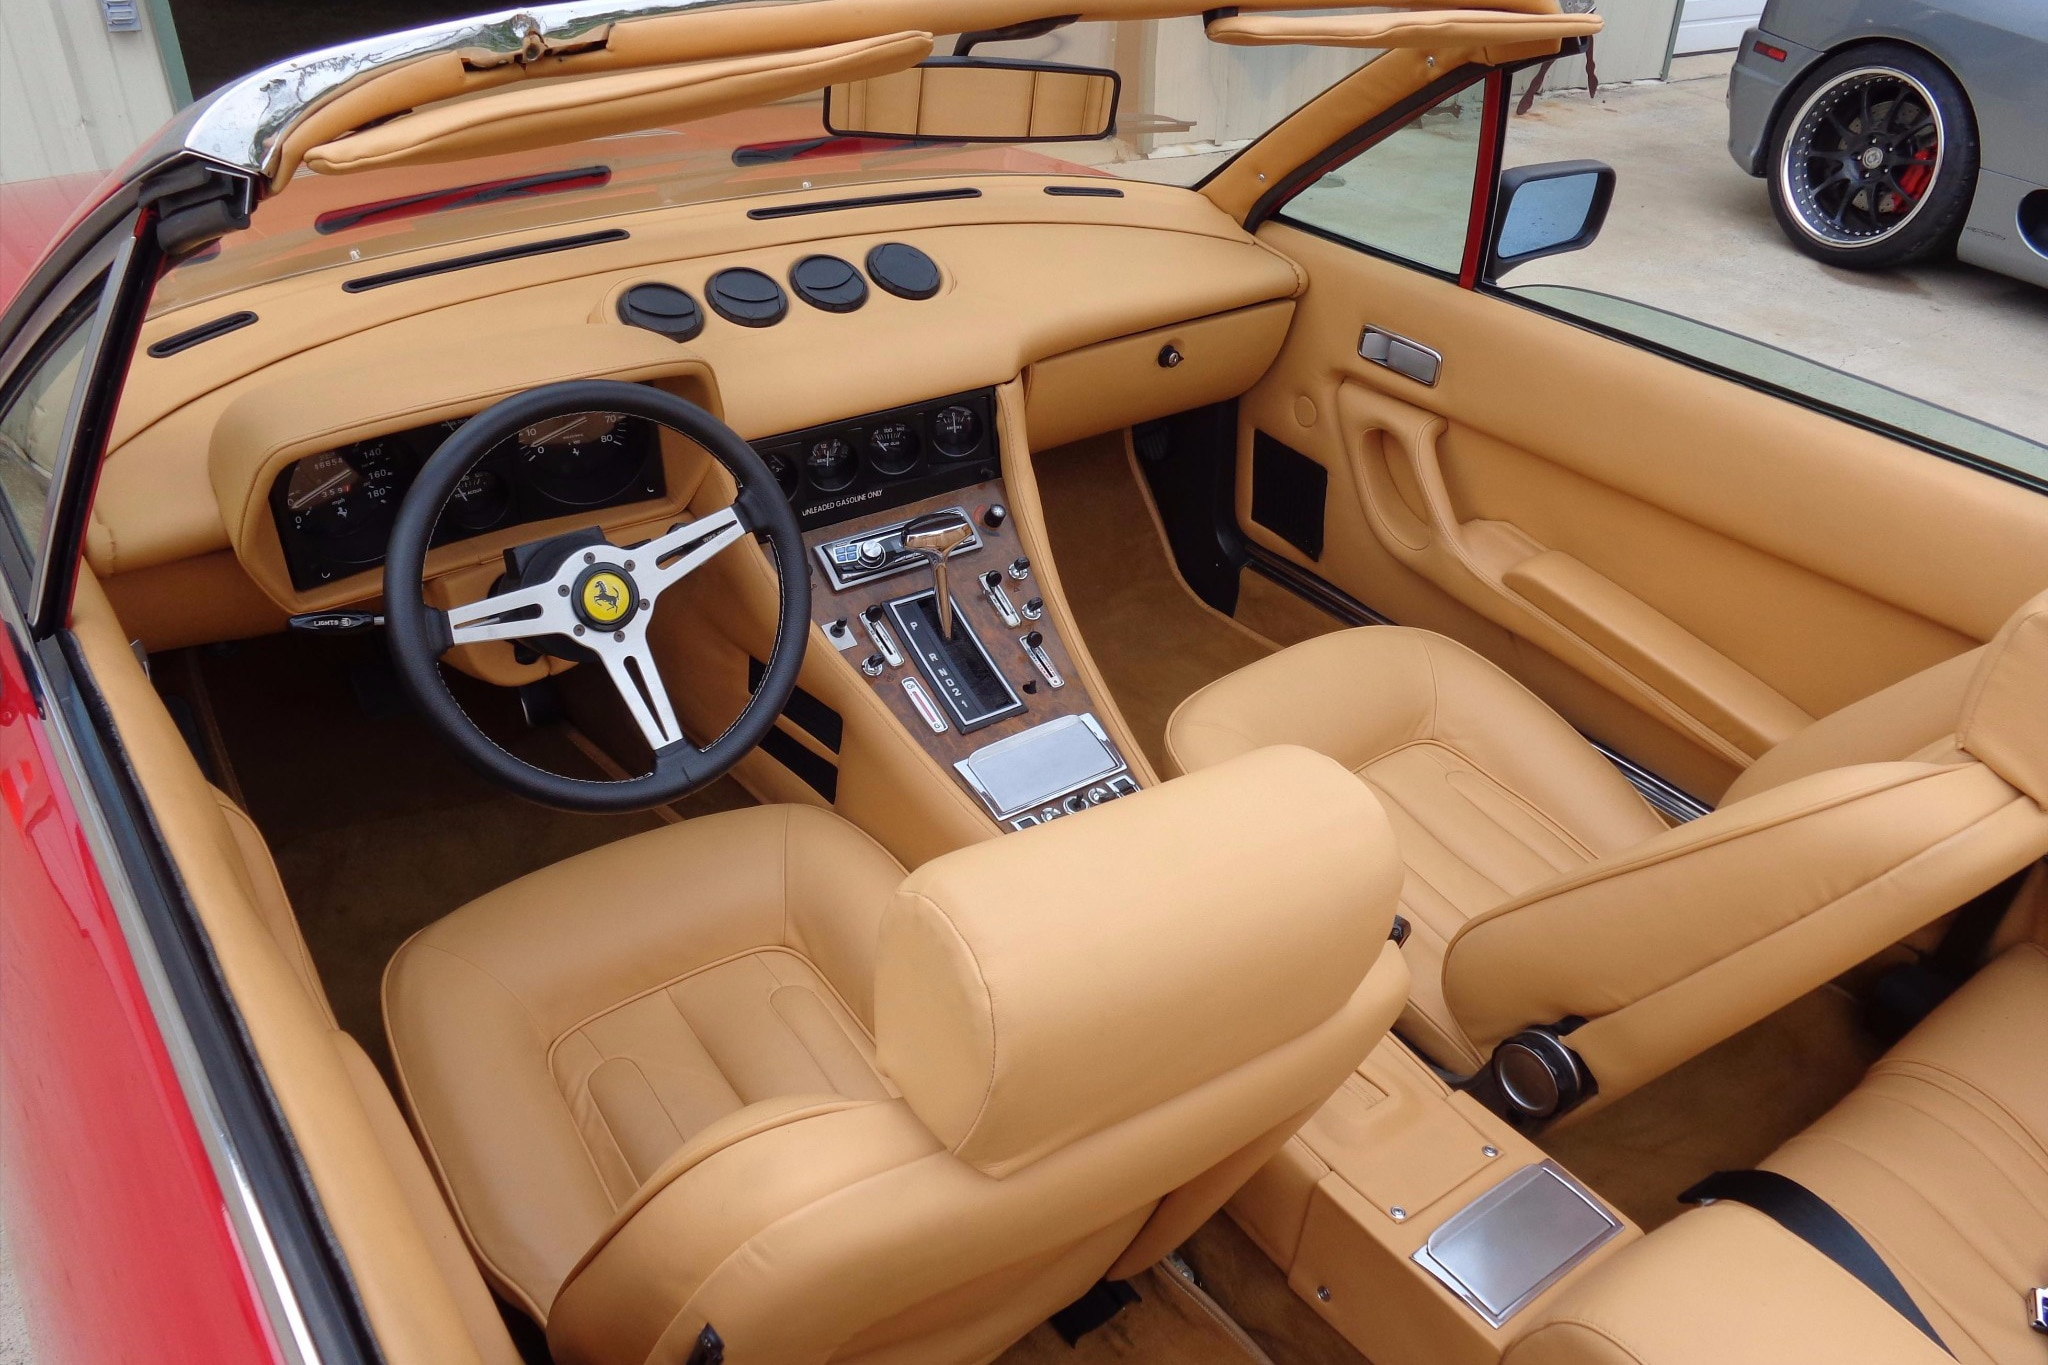 1980-Ferrari-400i-Convertible-Just-Listed-Interior Interesting 1988 Ferrari Mondial Cabriolet Review Cars Trend